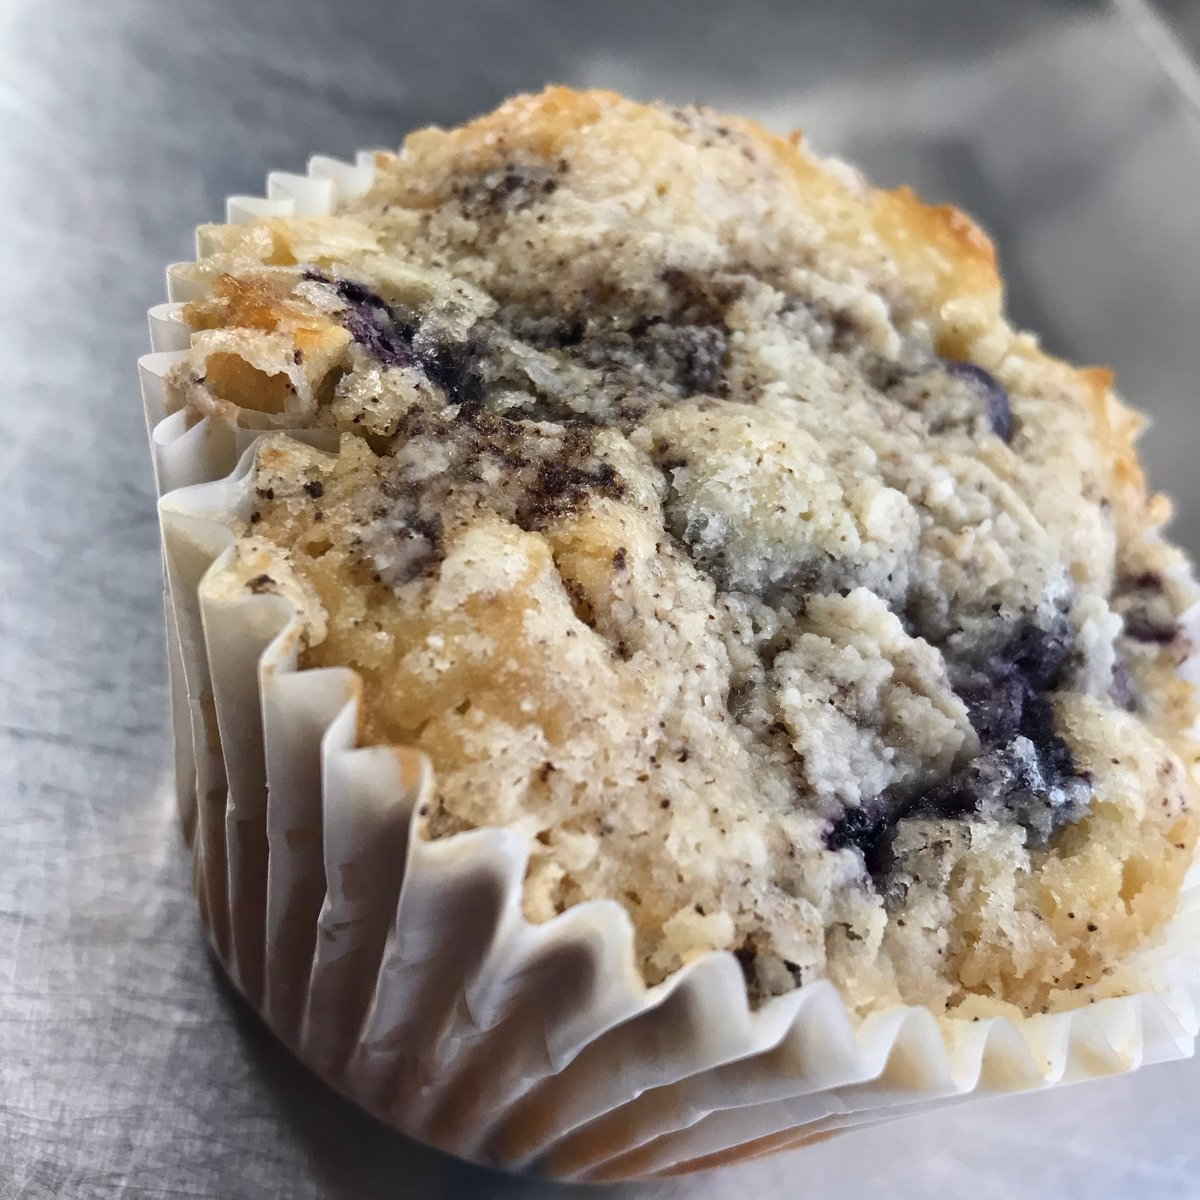 Midday Cake Break!  We have Lemon Blueberry Muffins, Patty Cake, and Cookies.  Come and get your pick me up!  #recess #foodtruck #recessfoodtruck #Oregon #oregoncoast #localeats #pnw #fresh #burger #cookies